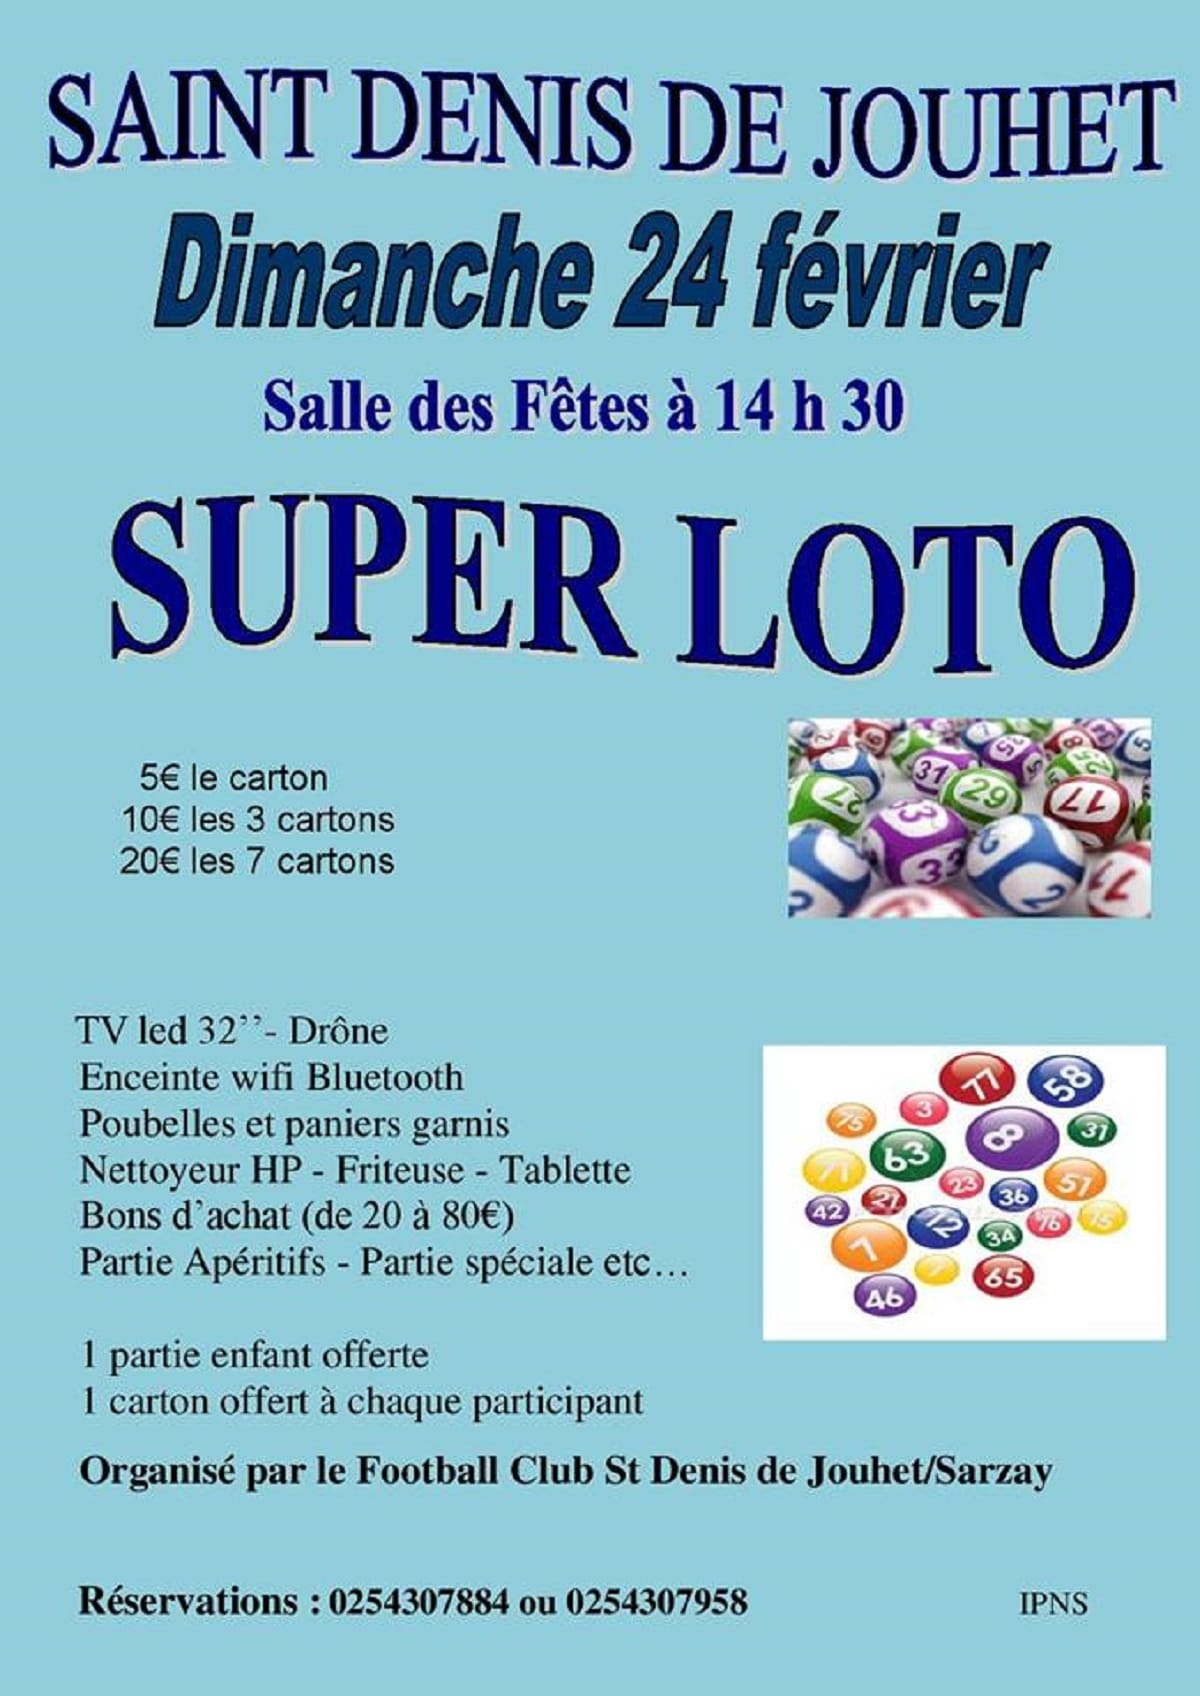 loto_foot_saint_denis_de_jouhet